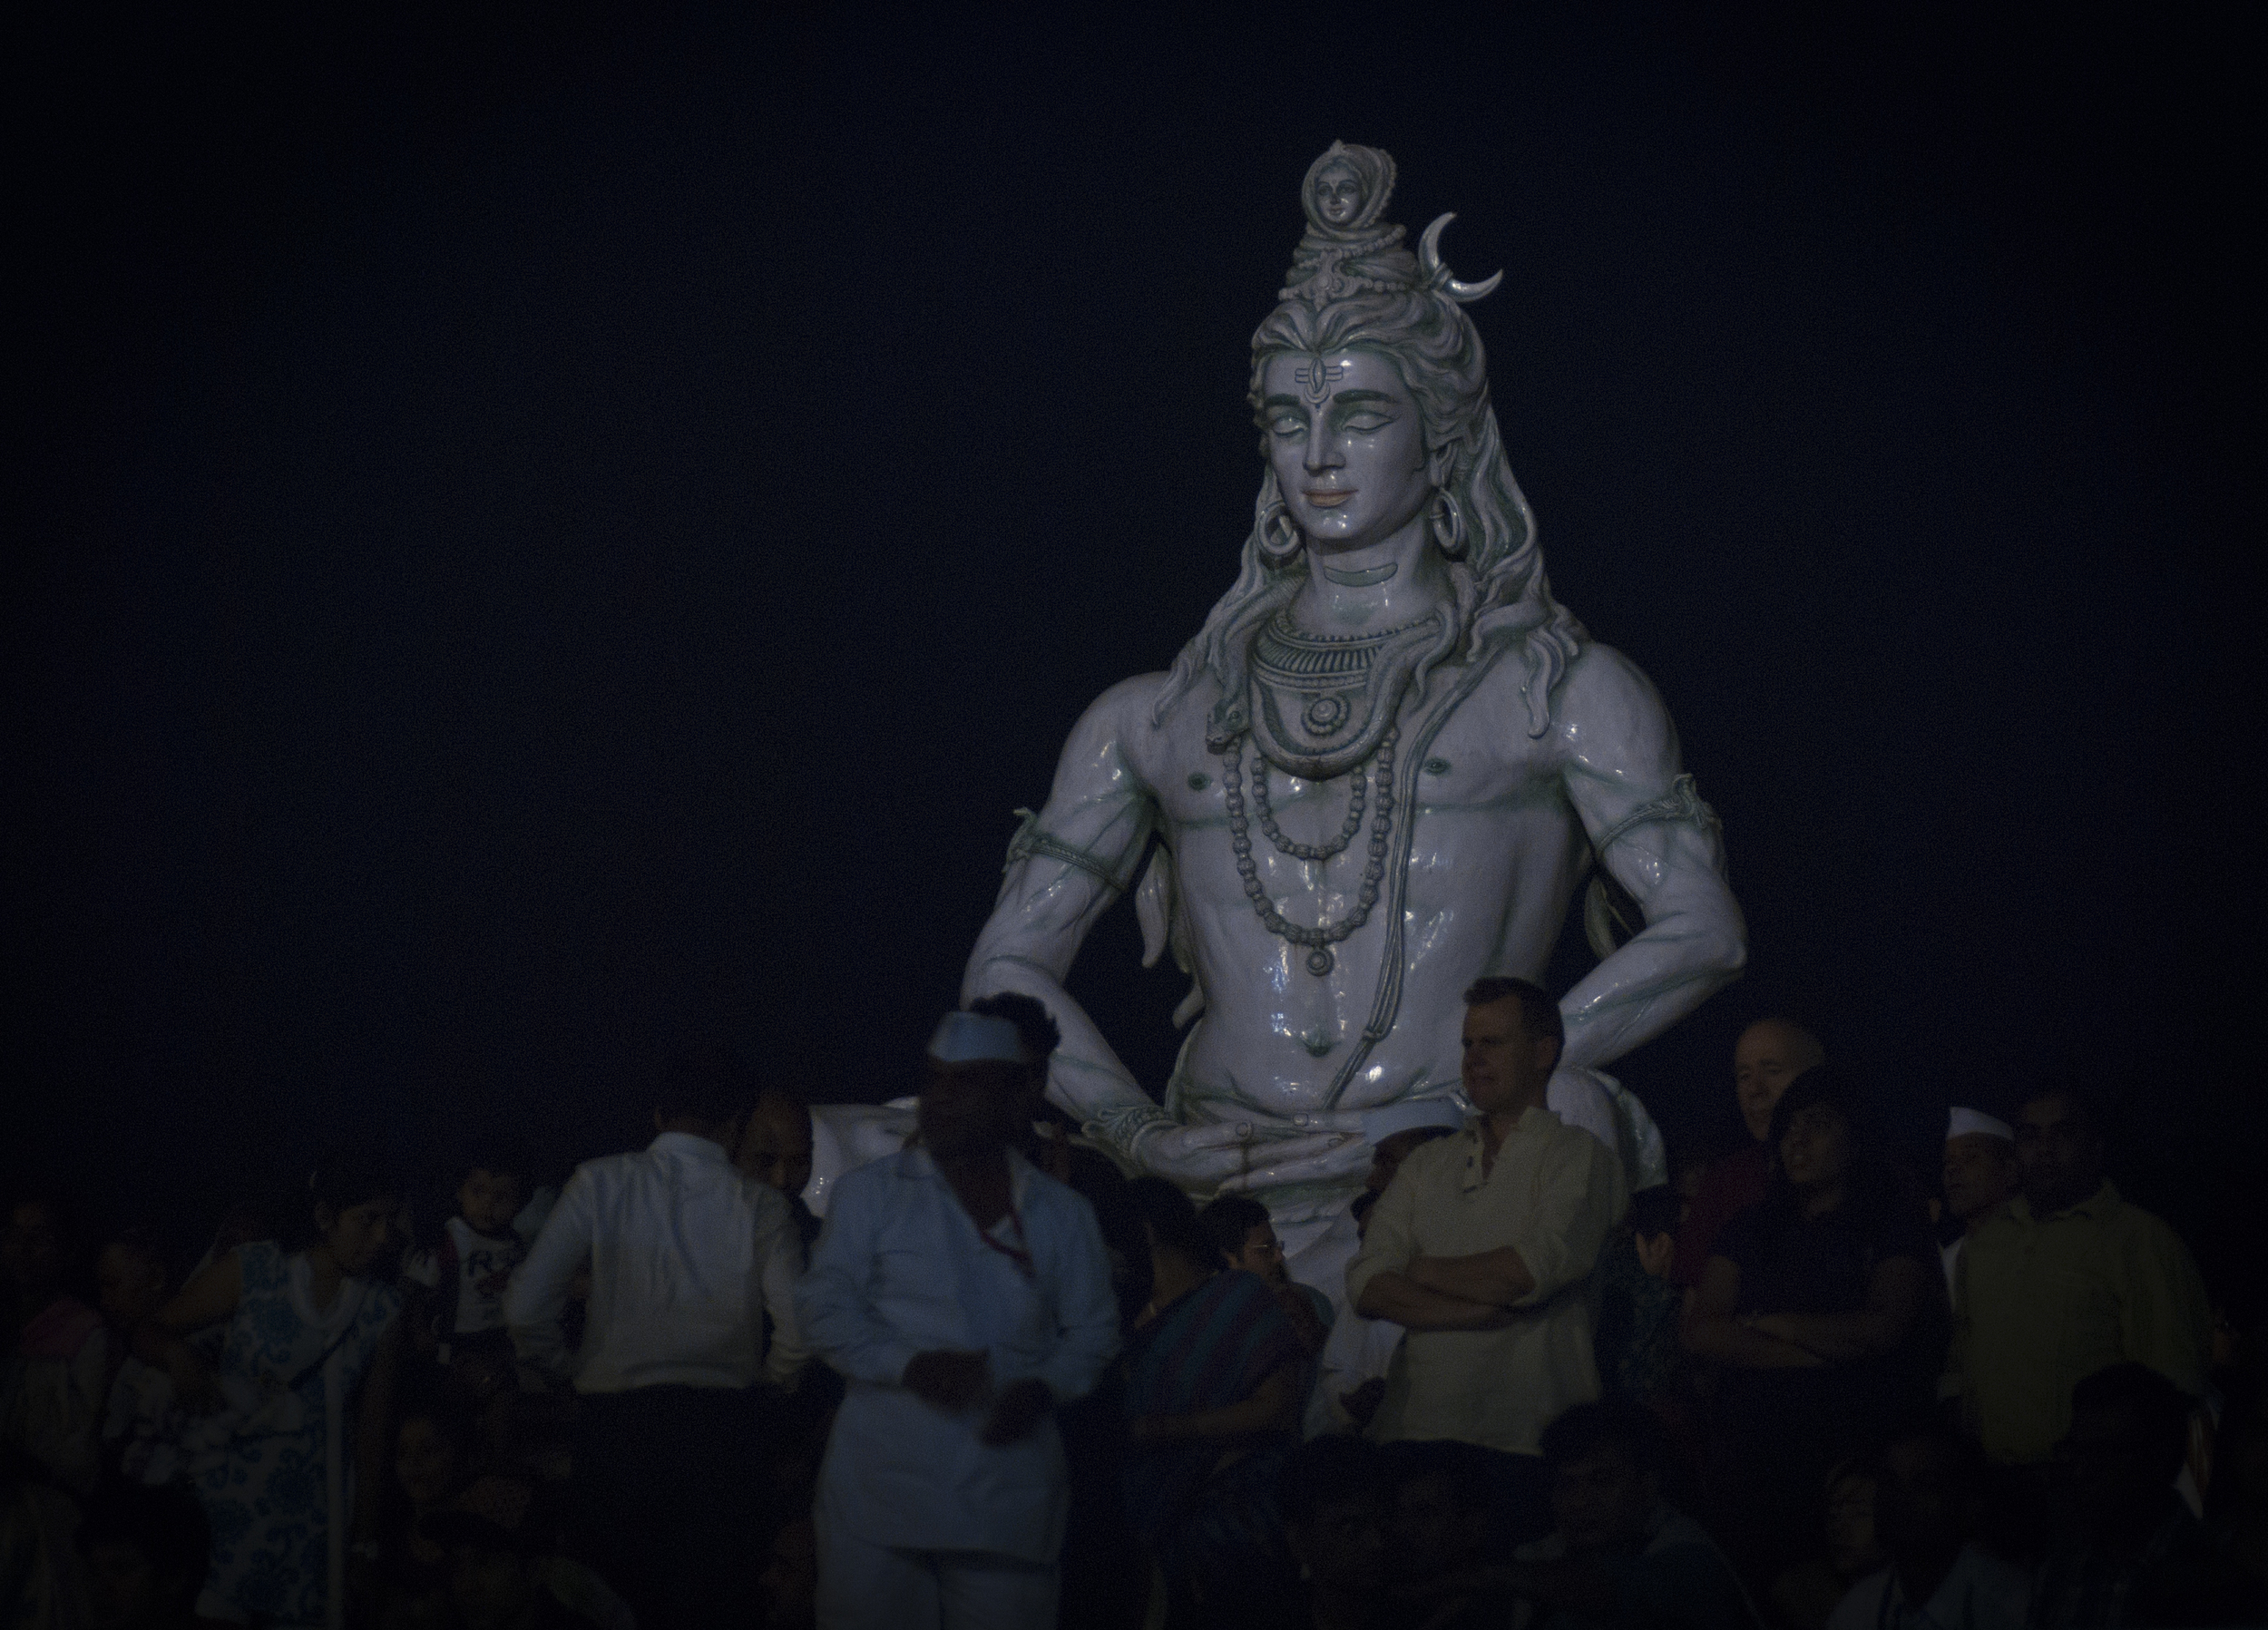 Rishikesh was often recognized by the large Shiva statue which was recently swept away in the 2013 floods that killed